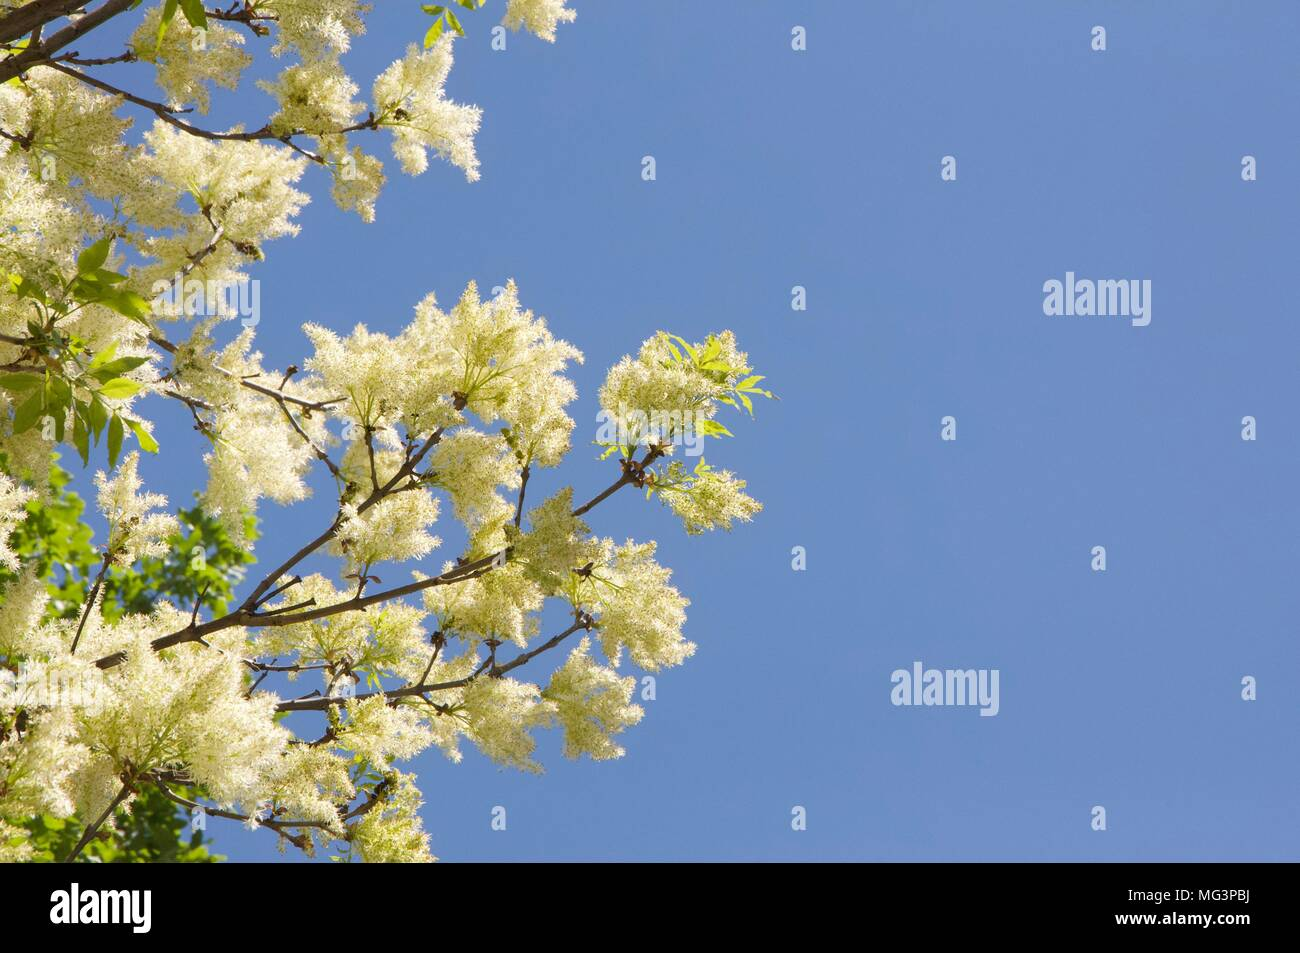 Tree With Yellow Flower With Blue Sky In Background Stock Photo